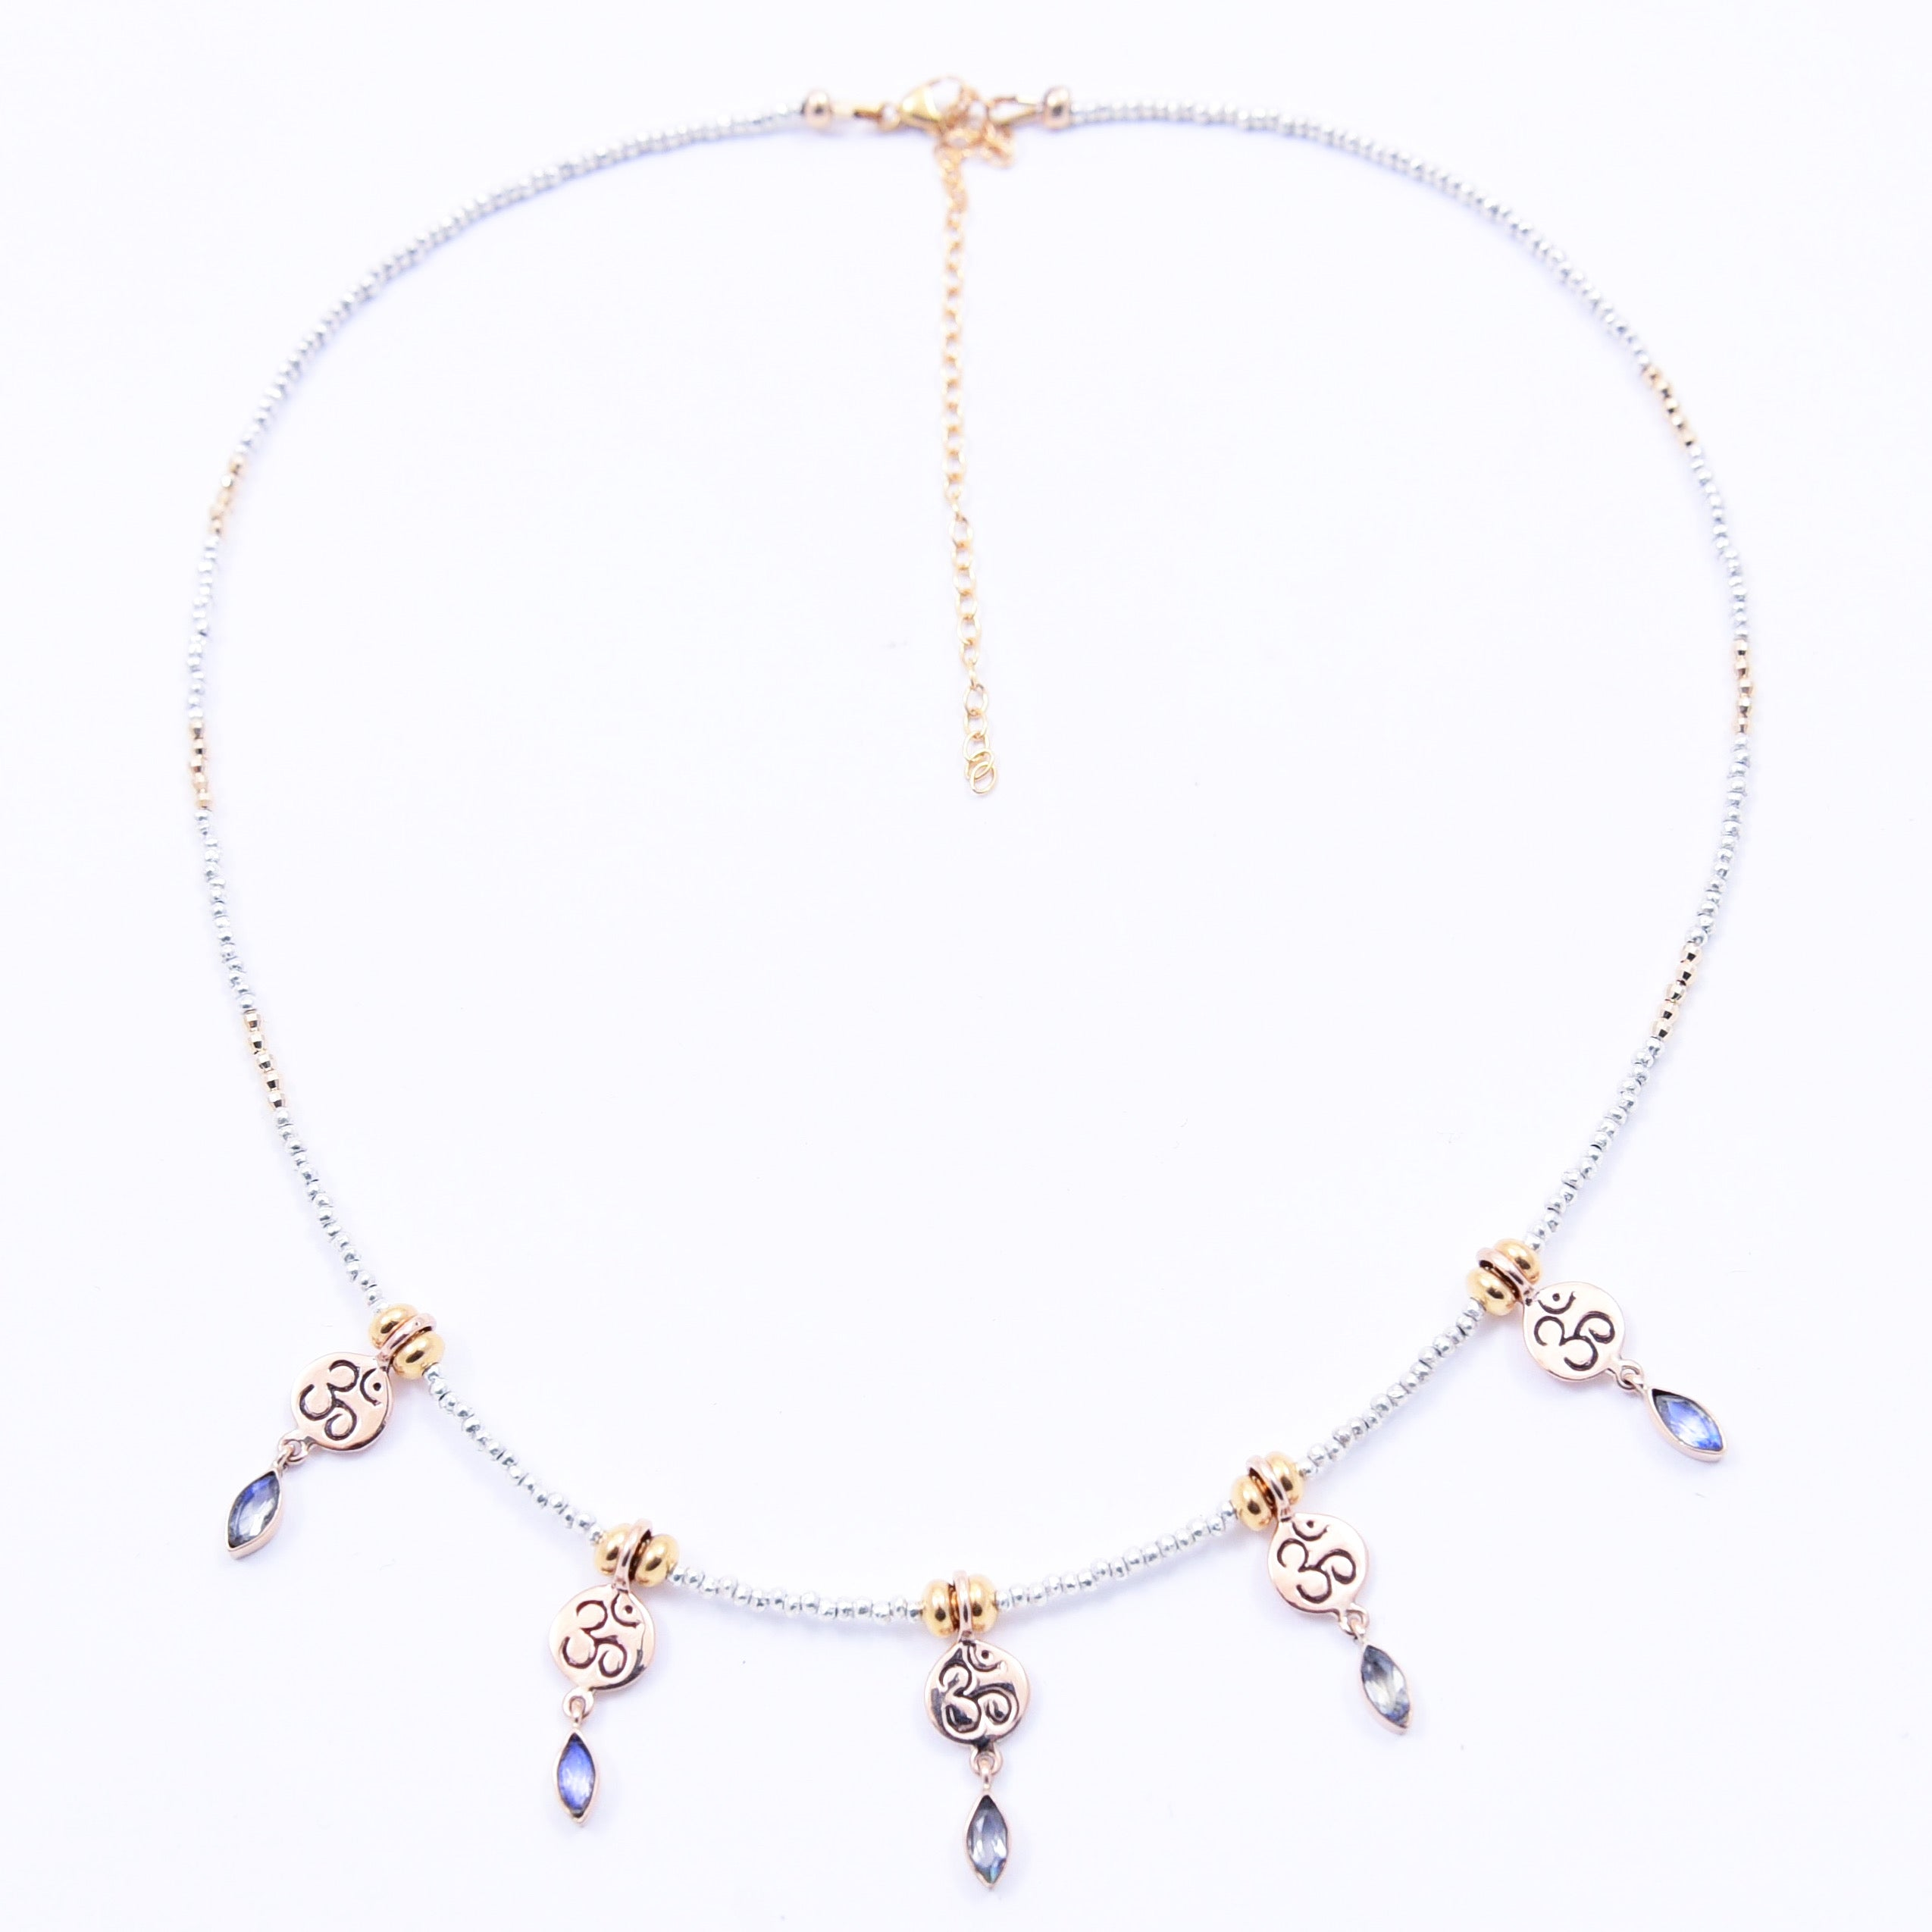 MOONSTONE & GOLD OM MANTRA NECKLACE